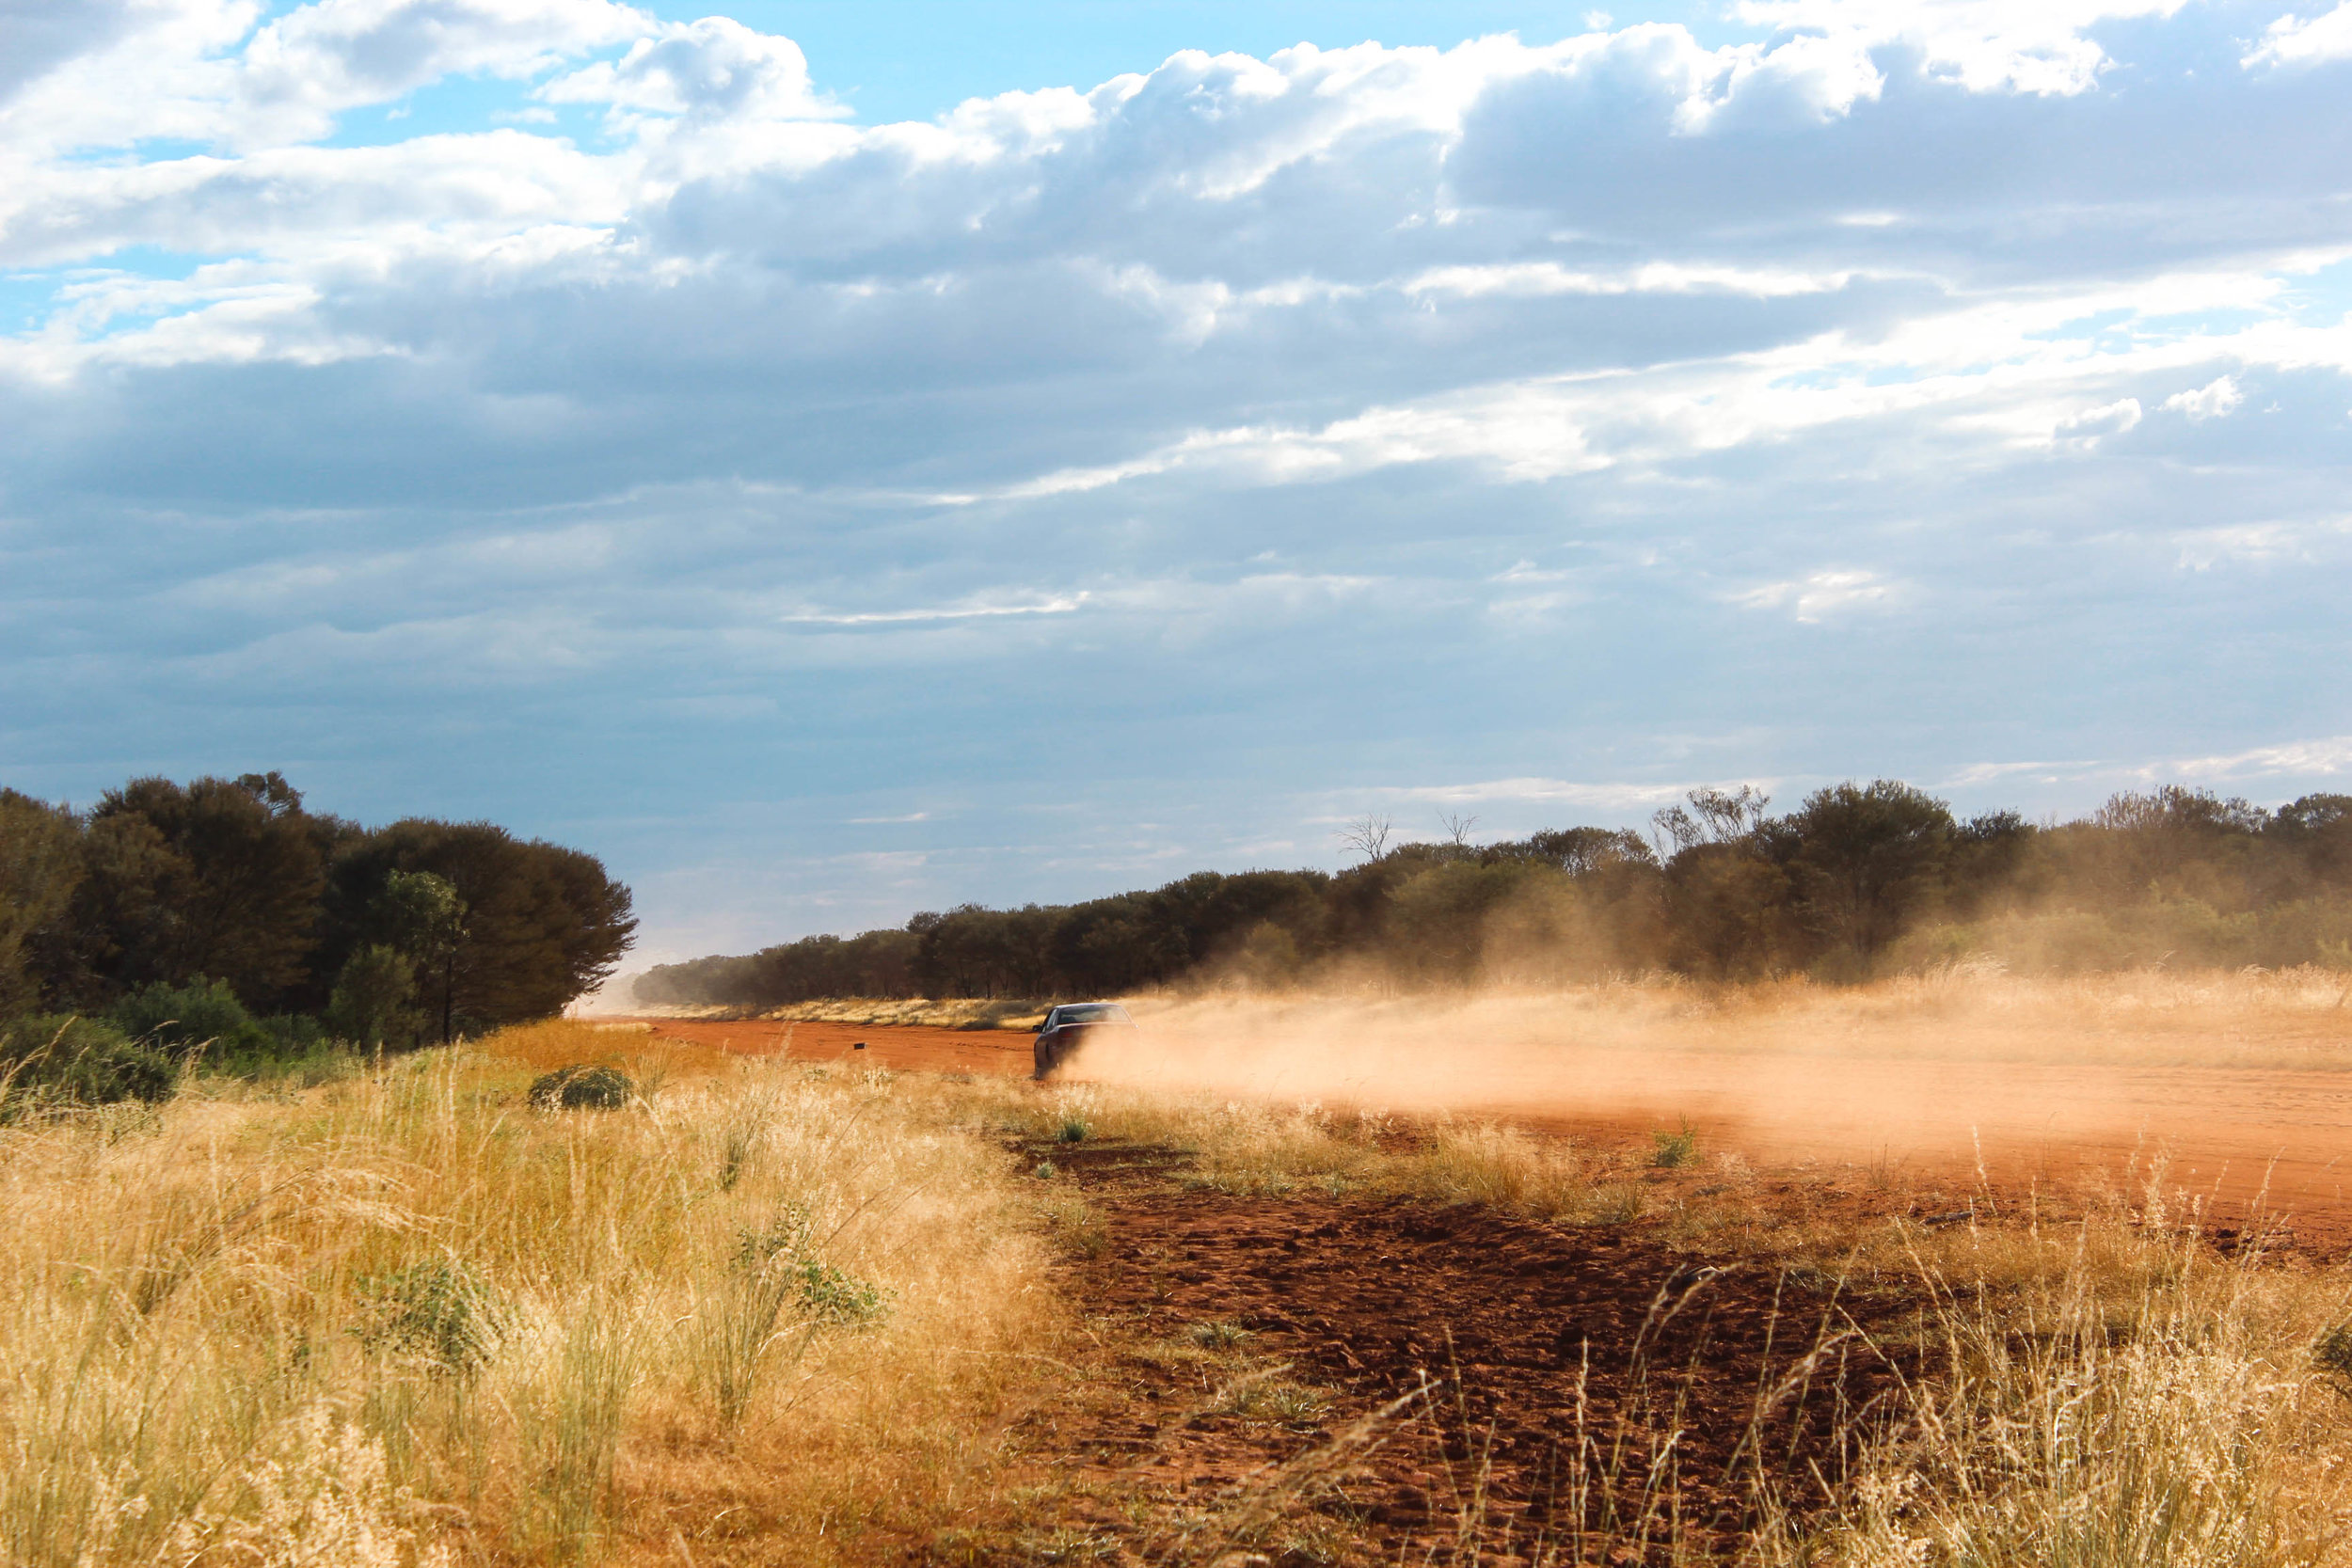 Intrepid Alexandra on her current sourcing trip, criss-crossing the Australian Central Desert...